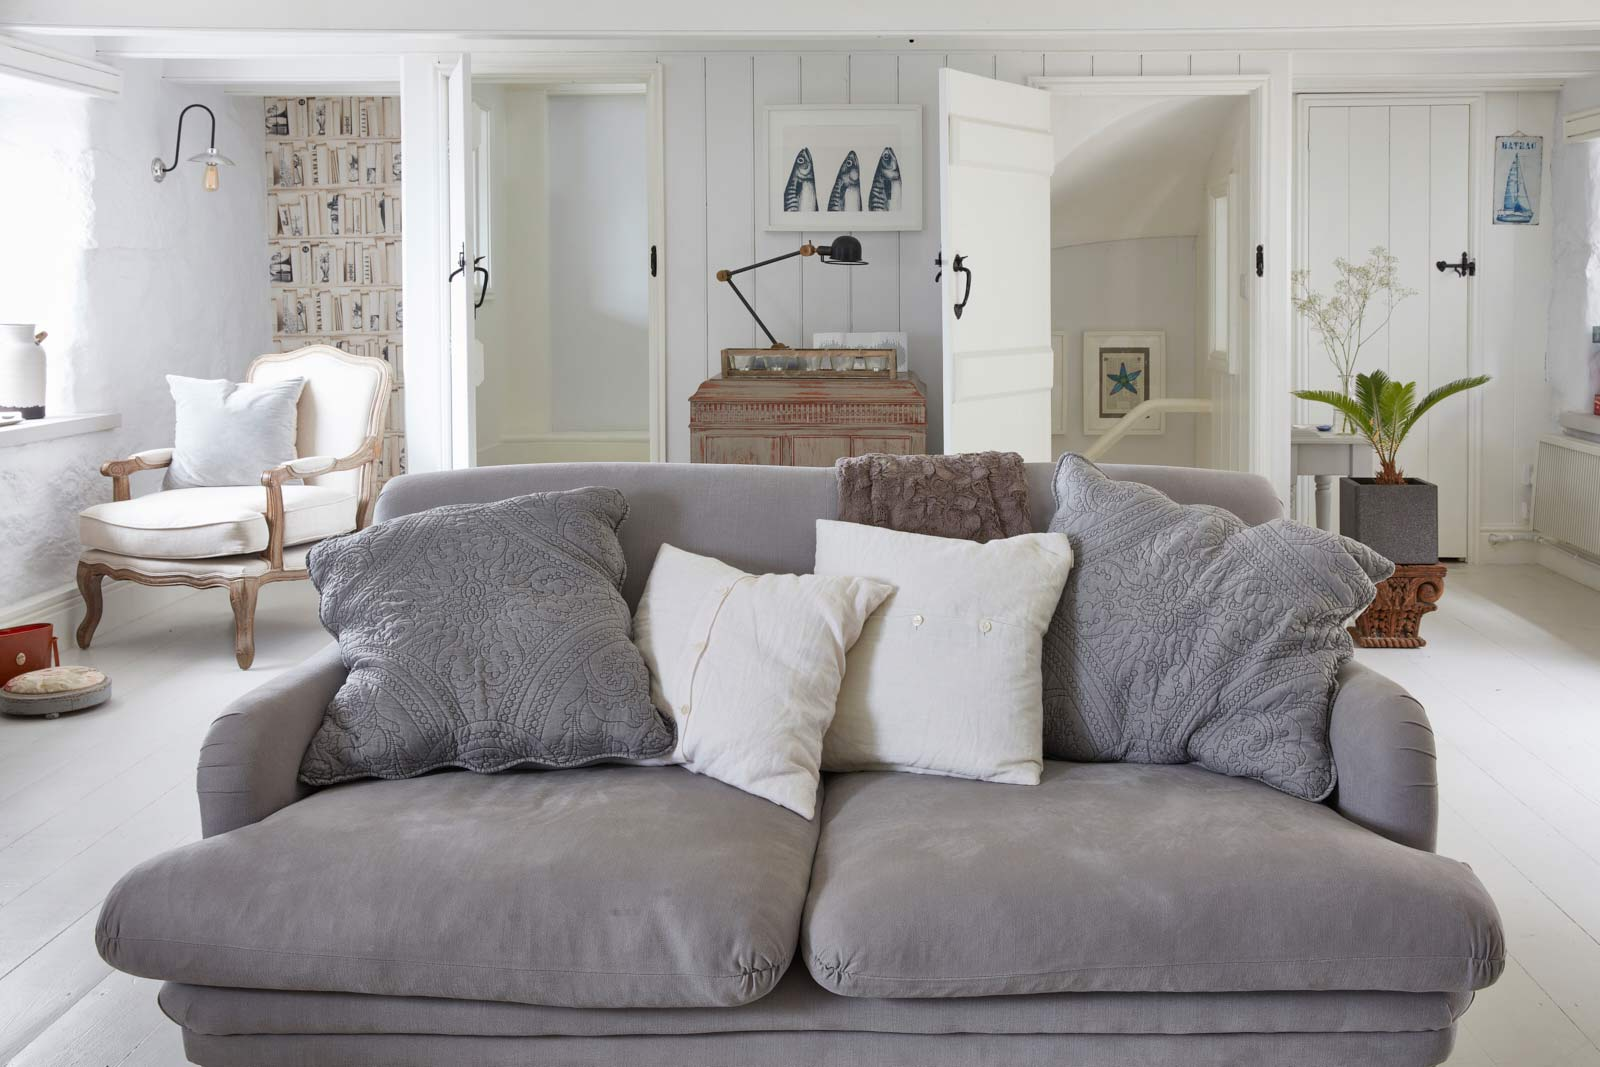 weekend minibreak at luxury cottage in cornwall to rent